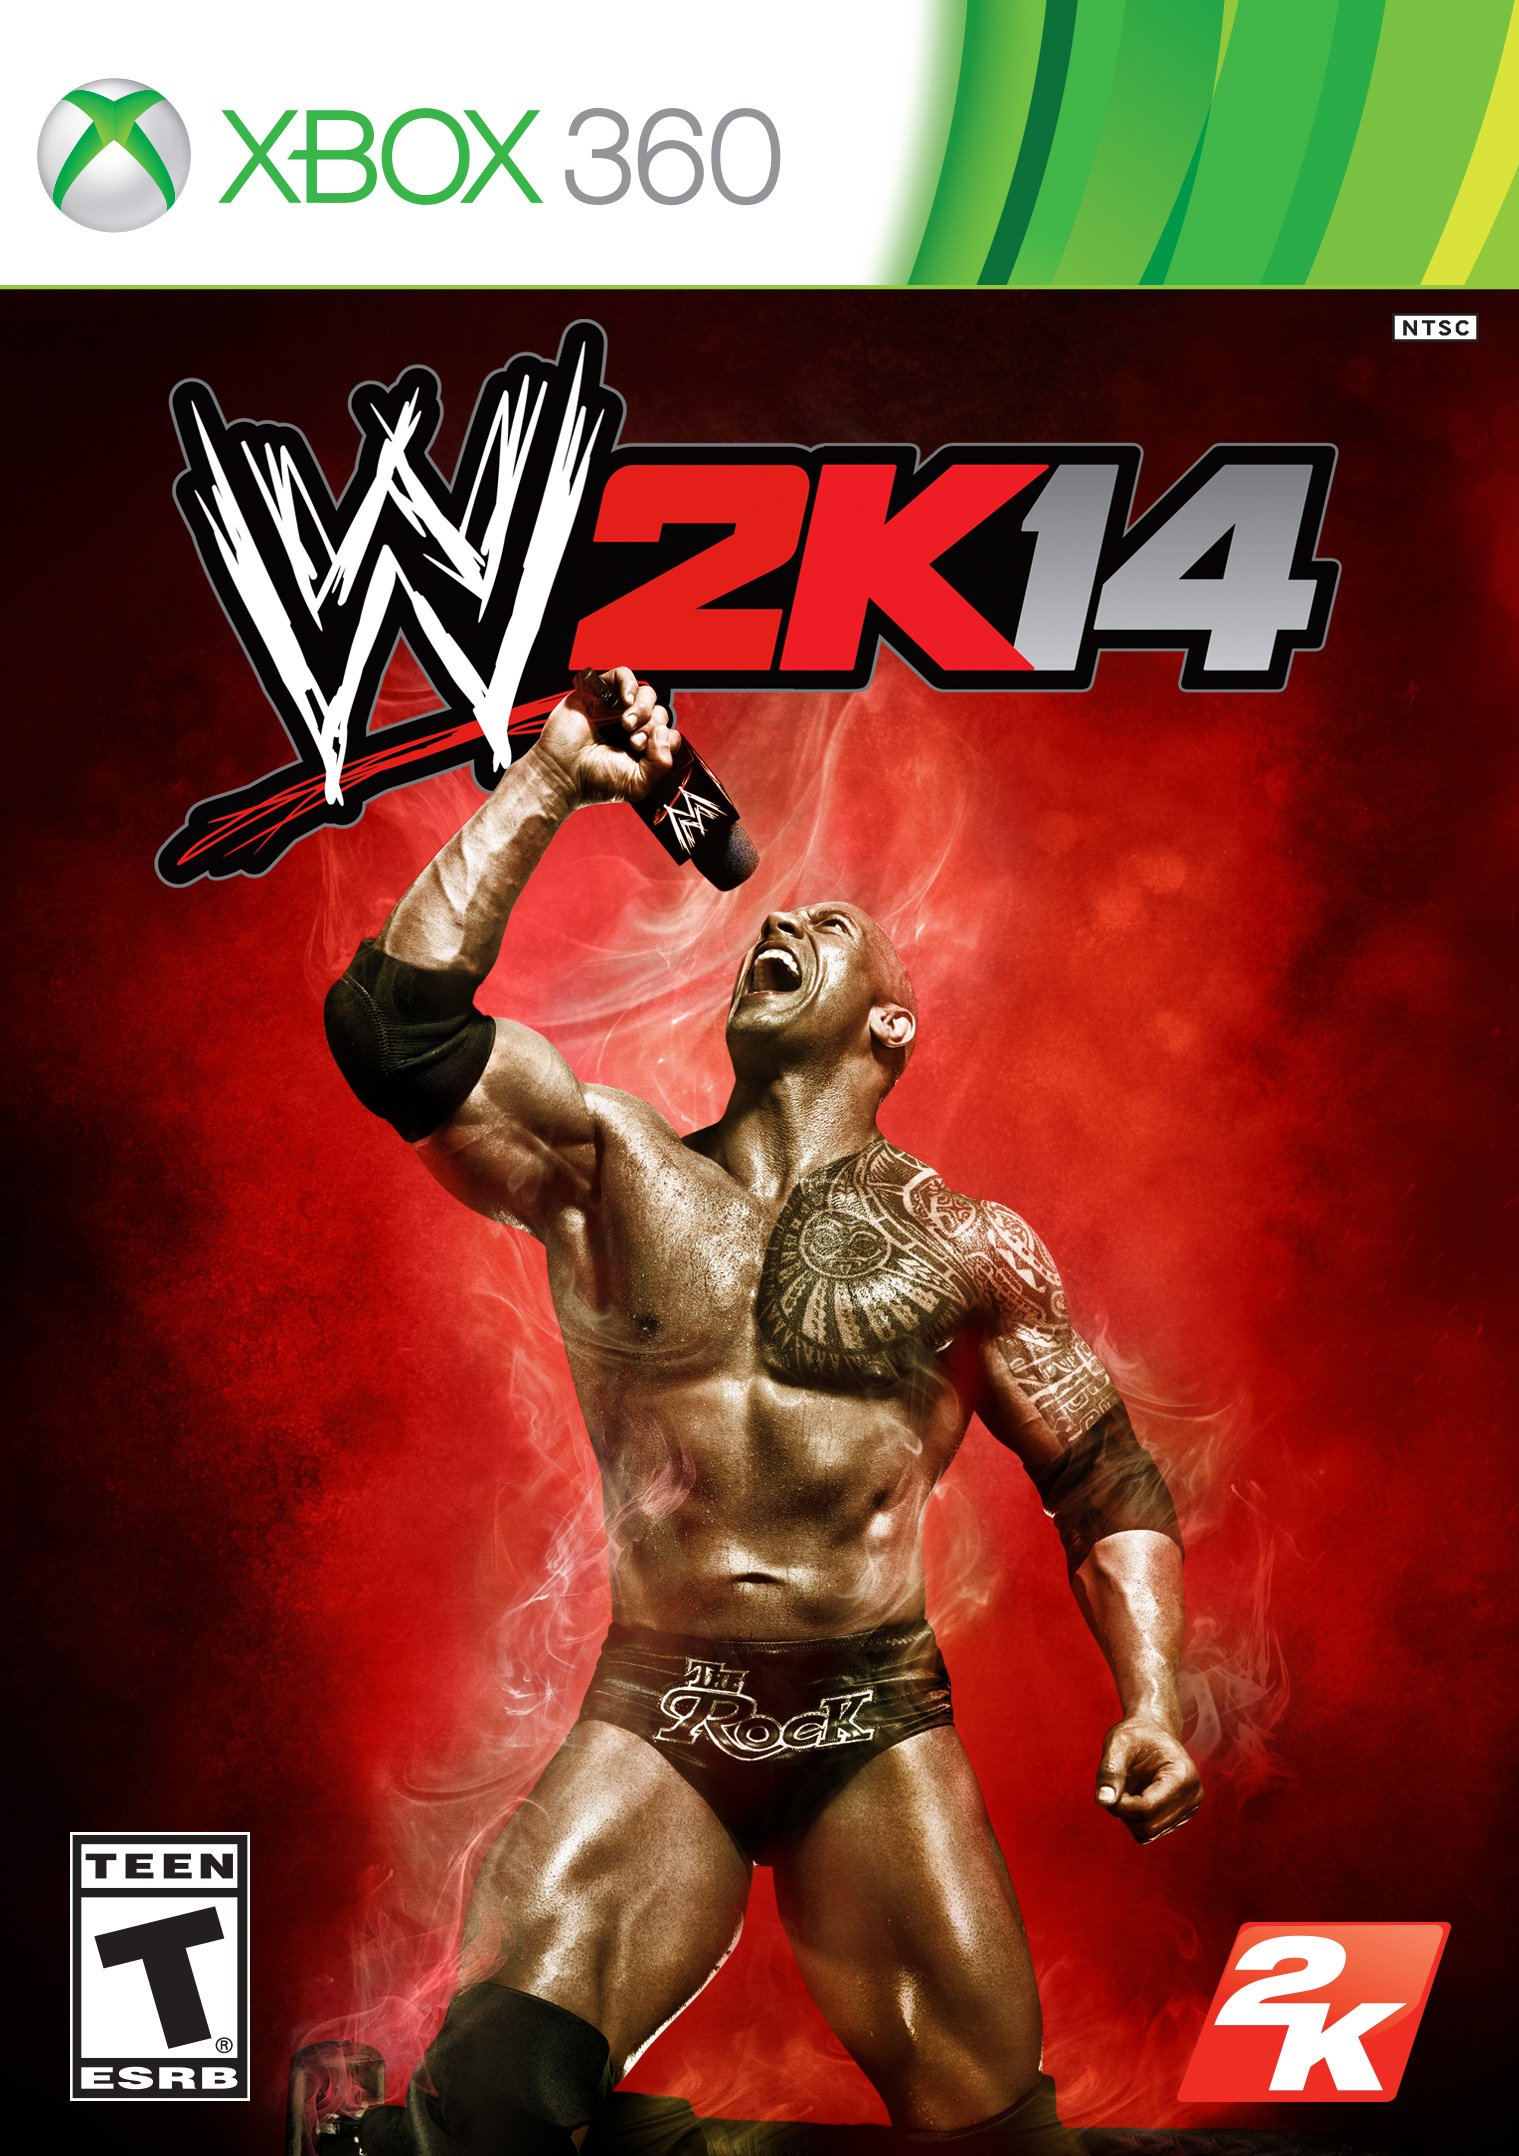 Xbox 360 Video Games New Releases WWE 2K14 Release Date ...